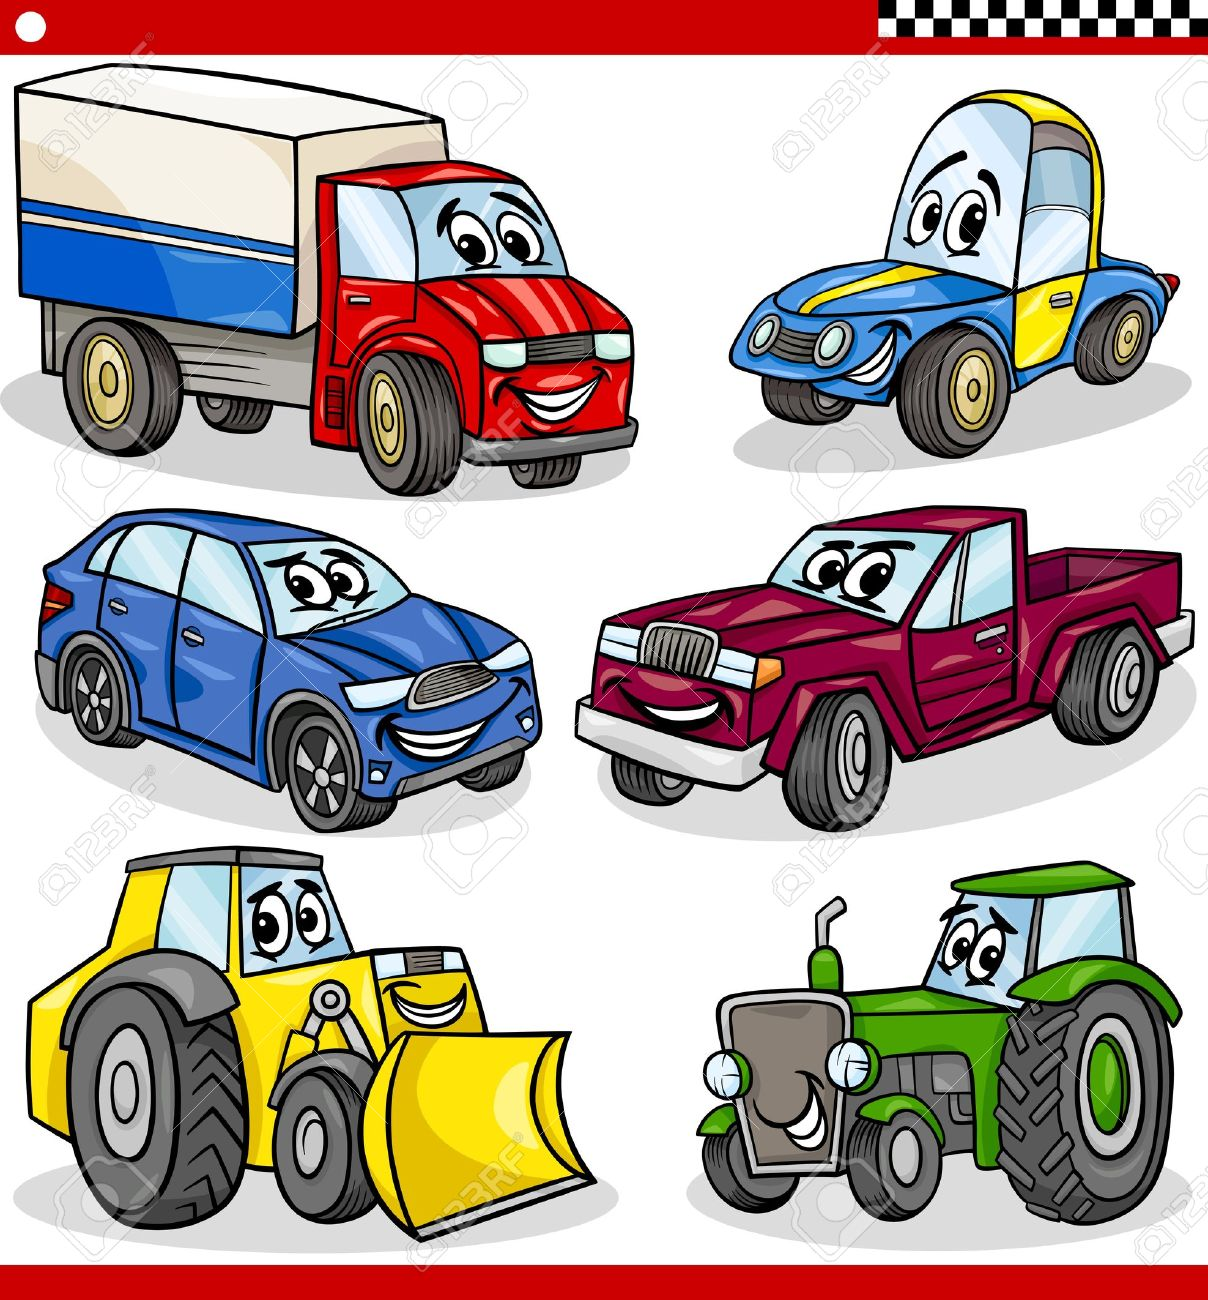 Cartoon Illustration Of Cars And Trucks Vehicles And Machines